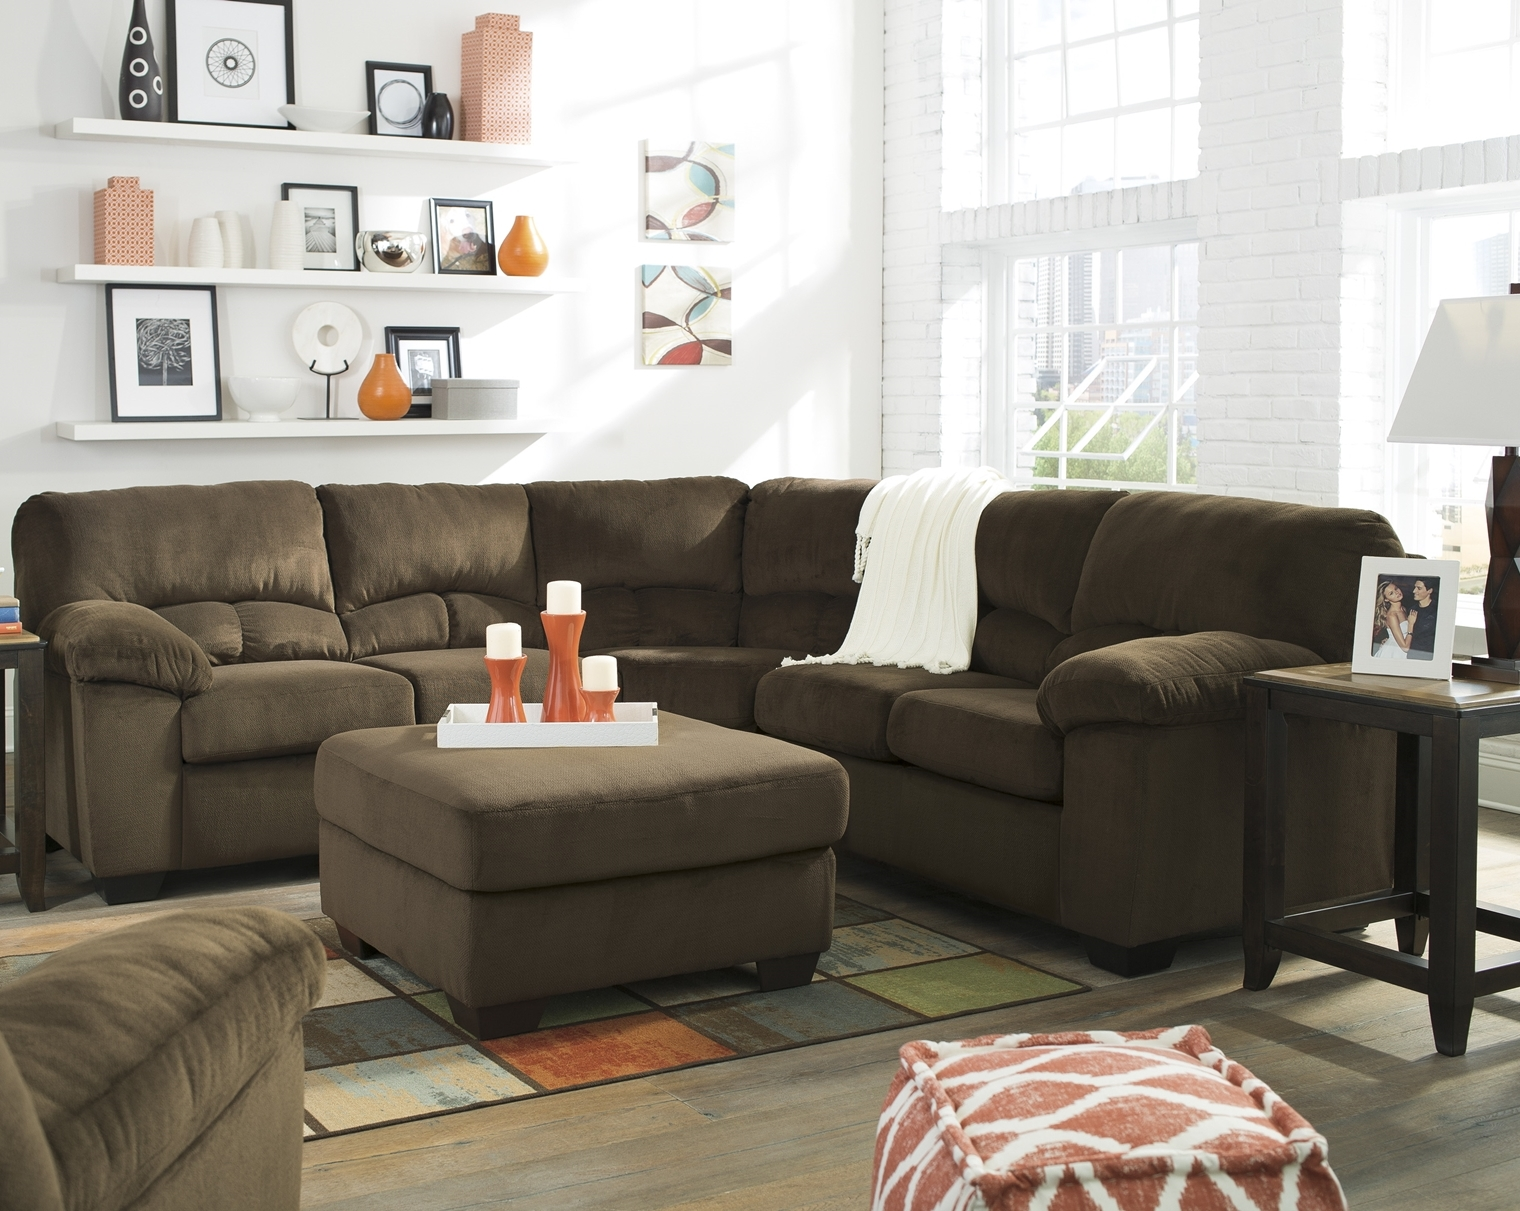 Dailey sectional 95403 dallas designer furniture 4 less for Furniture 4 less dallas